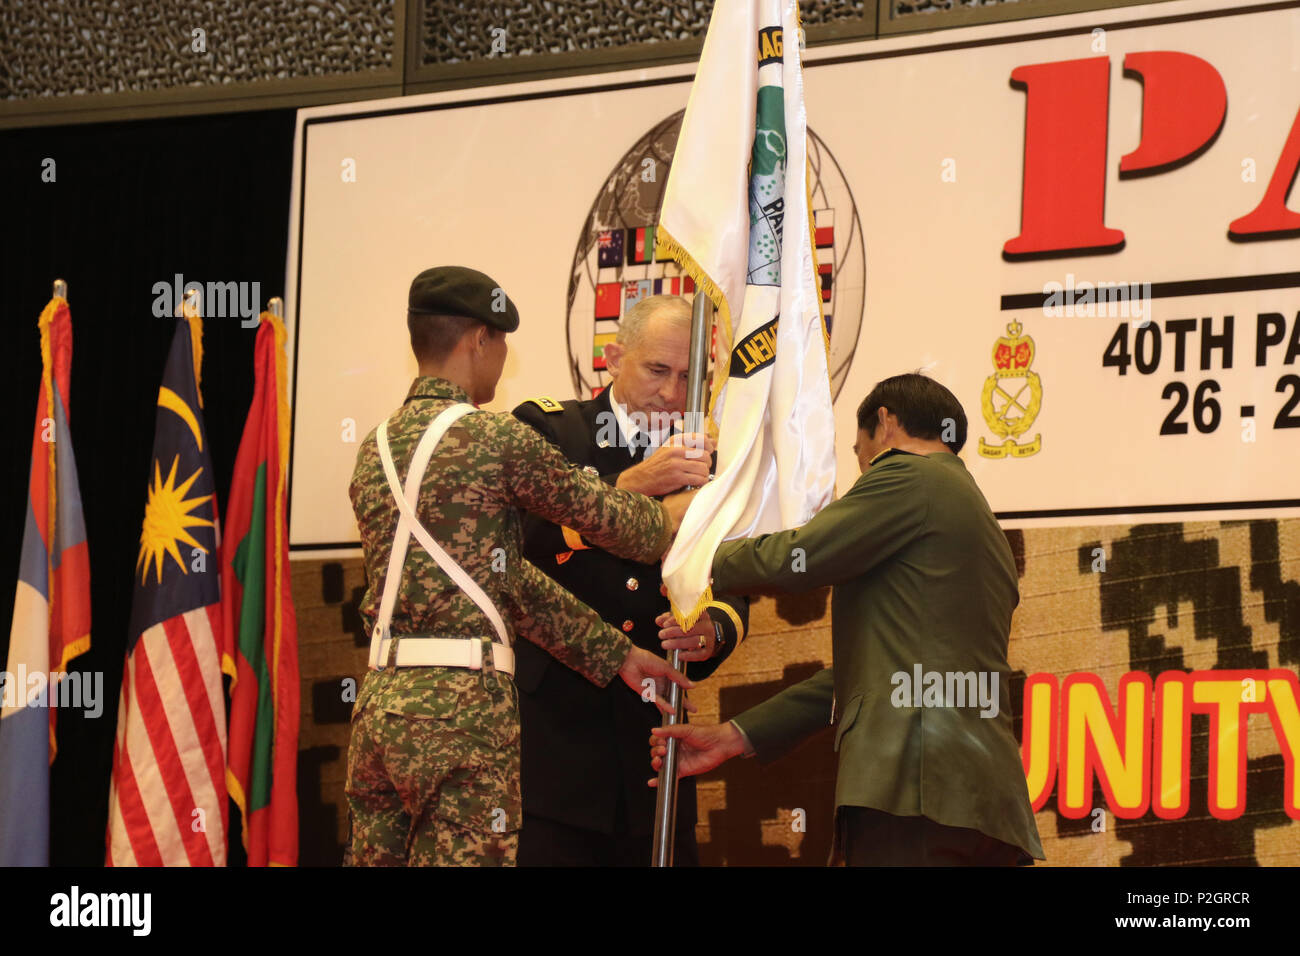 """U.S. Army Gen. Robert B. Brown, Commander, U.S. Army Pacific and Lt. Gen. Dato' Sri Zulkiple, Field Commander West, Malaysian Army post the Pacific Armies Management Seminar Flag during the opening ceremony for PAMS 2016, in Kuala Lumpur, Malaysia, Sept. 26. PAMS is an annual multinational military seminar providing a forum for senior level ground force officers from regional ground forces and security forces to meet, exchange views and discuss professional military subjects. This year's theme is """"Unity of Effort: Building Civil-Military Partnerships to Counter Violent Extremism."""" This seminar Stock Photo"""